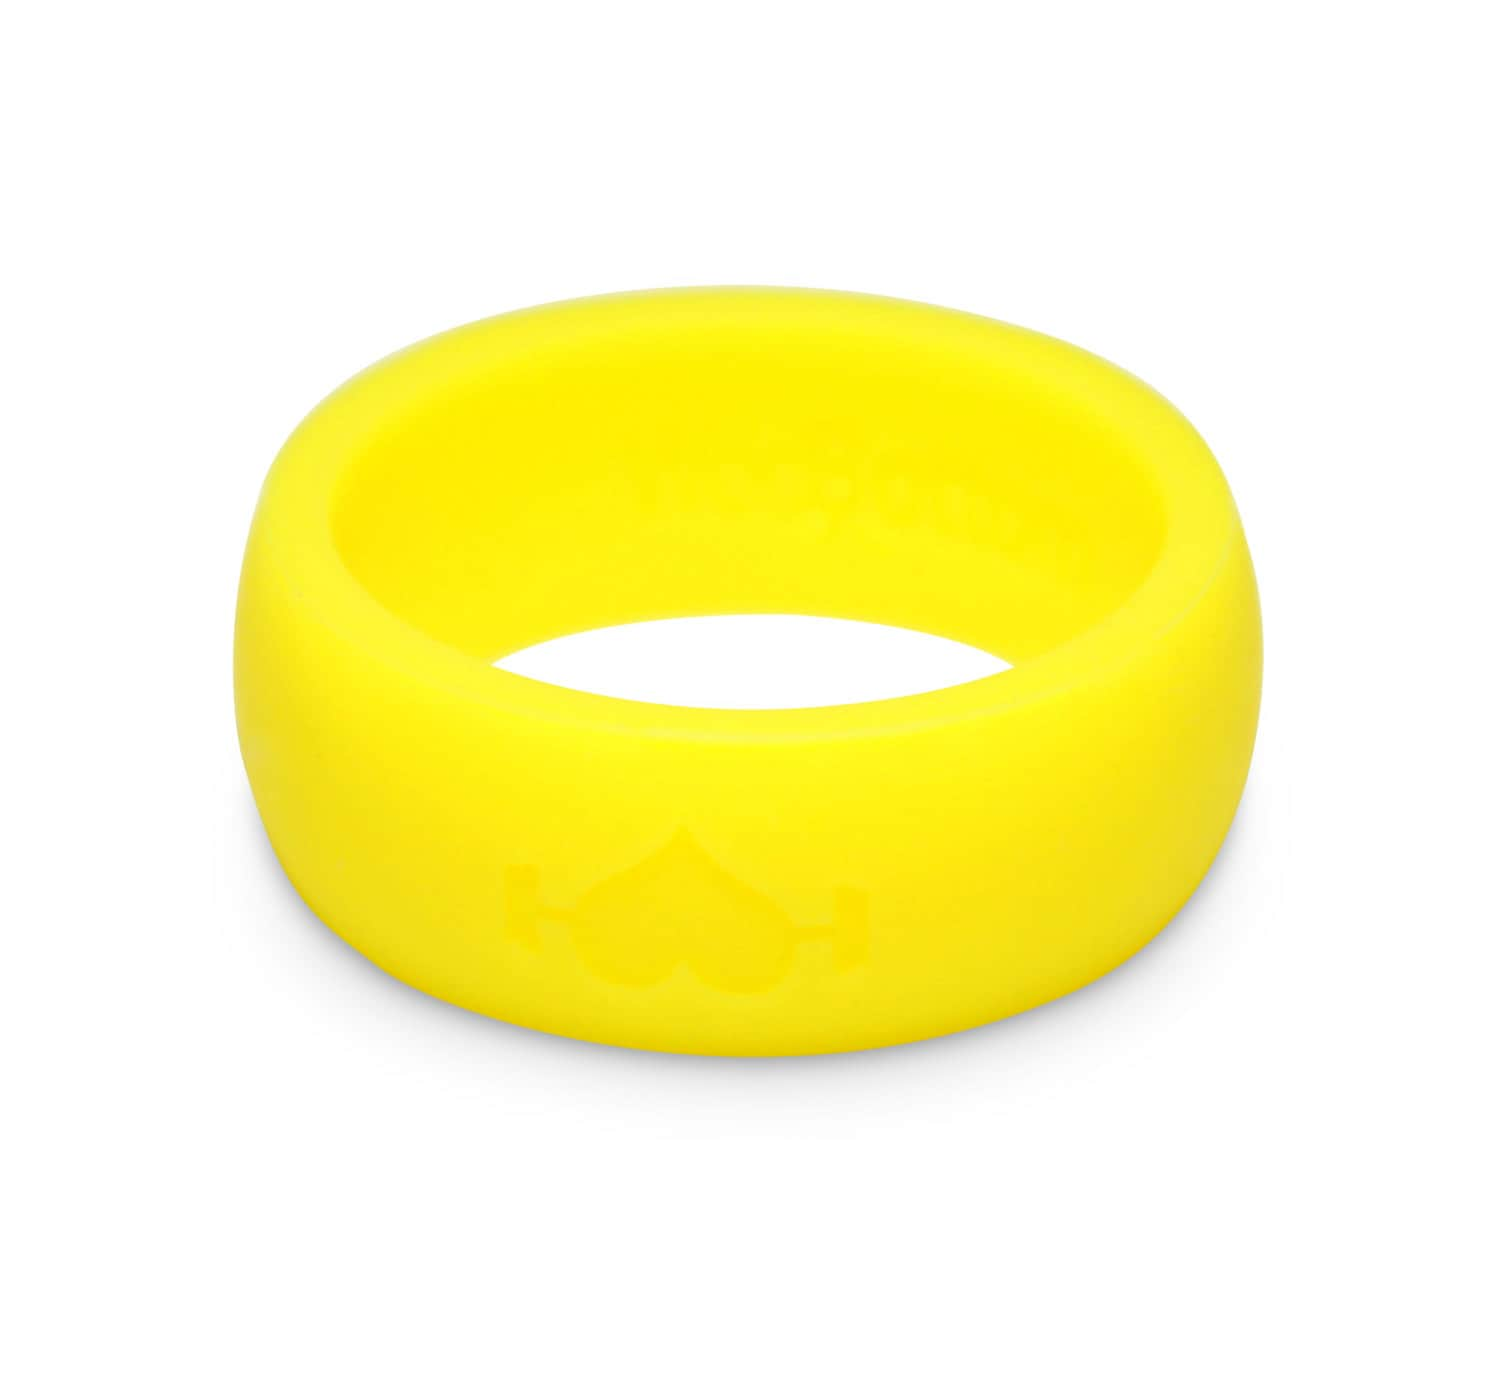 Awesome Knot theory Silicone Wedding Ring